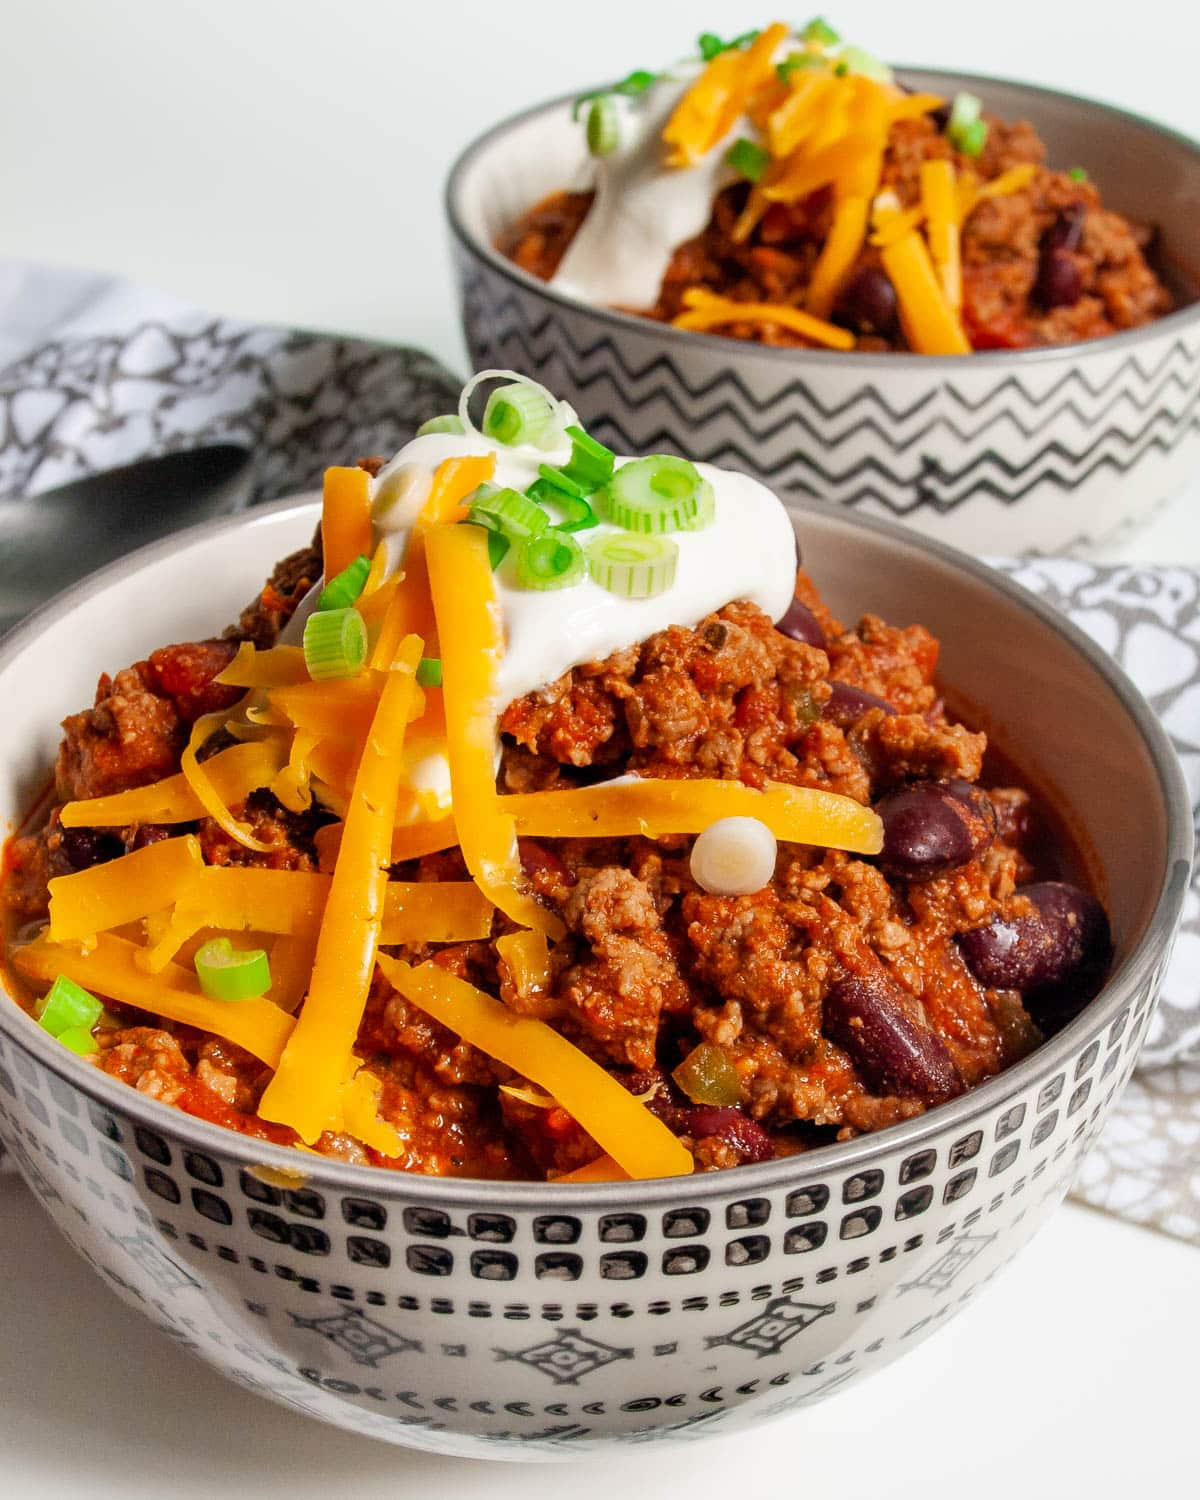 two bowls loaded with chili and topped with sour cream and cheddar cheese